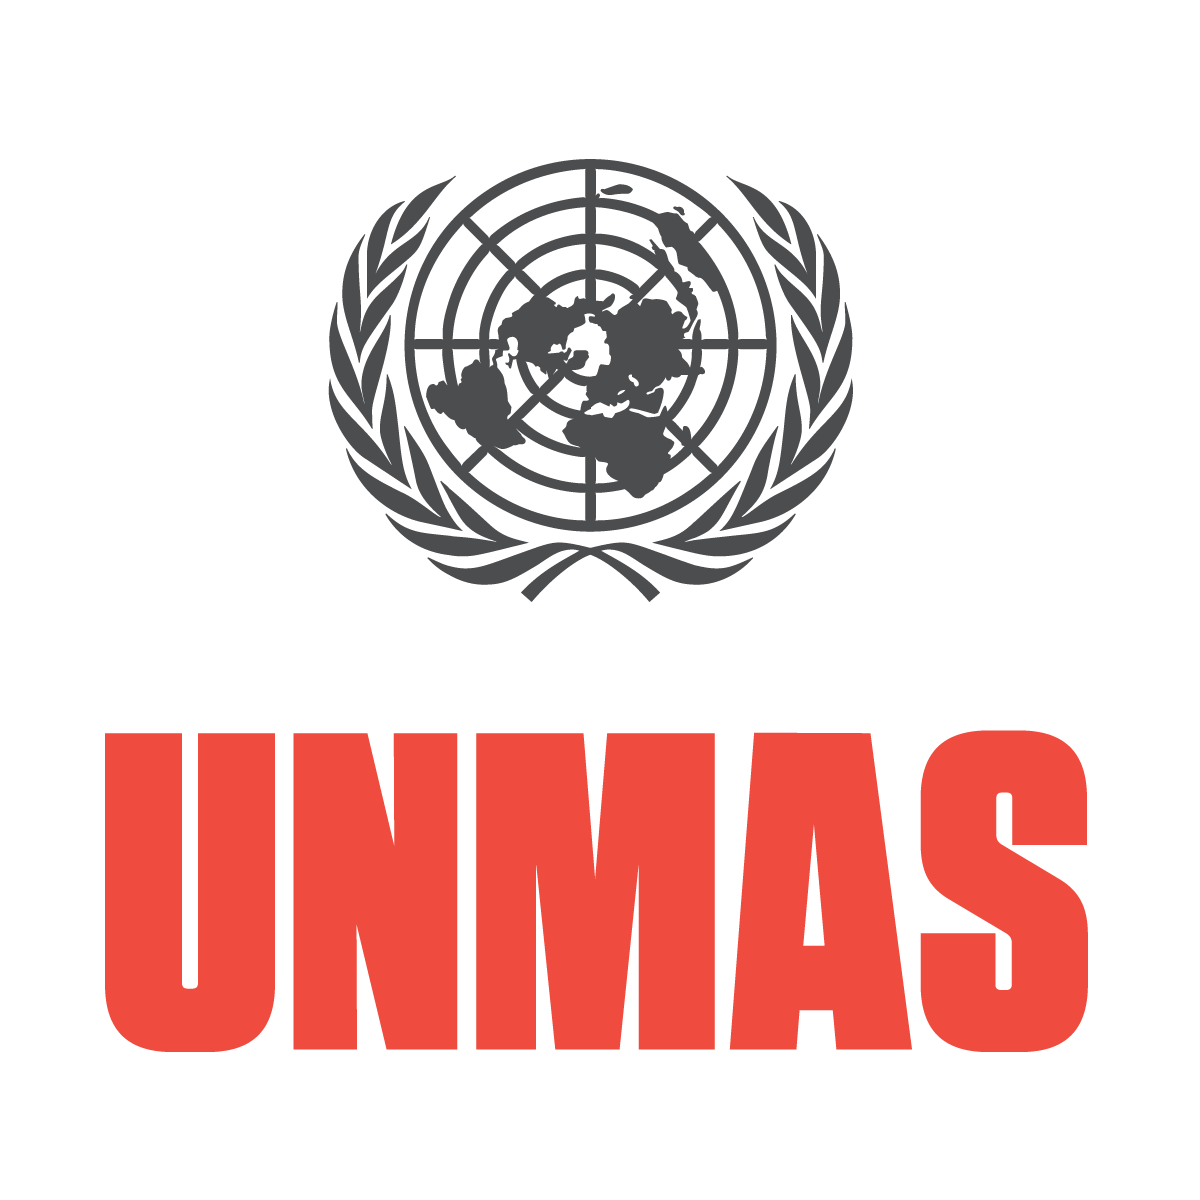 https://upload.wikimedia.org/wikipedia/commons/d/df/UNMAS_Logo_2013.png